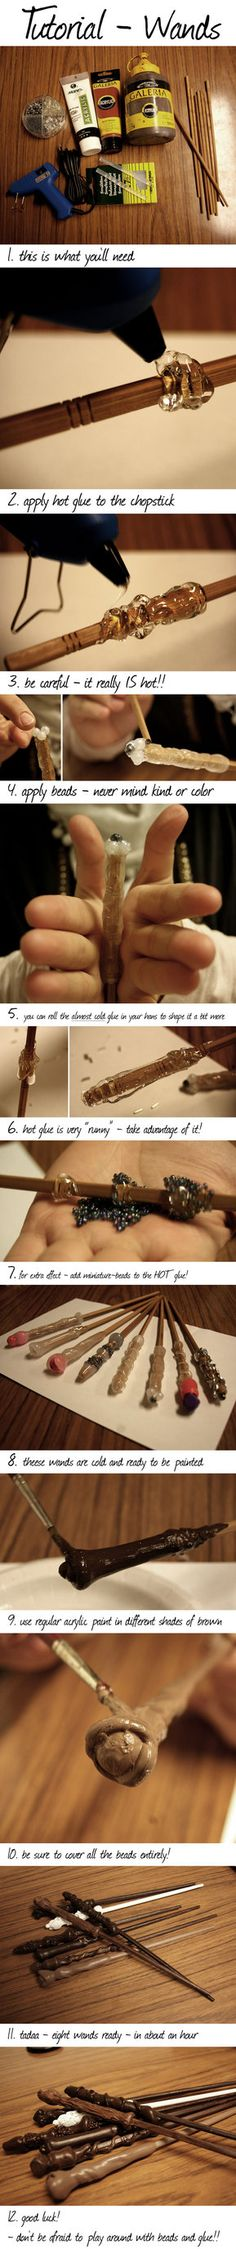 Wands - tutorial by *majann